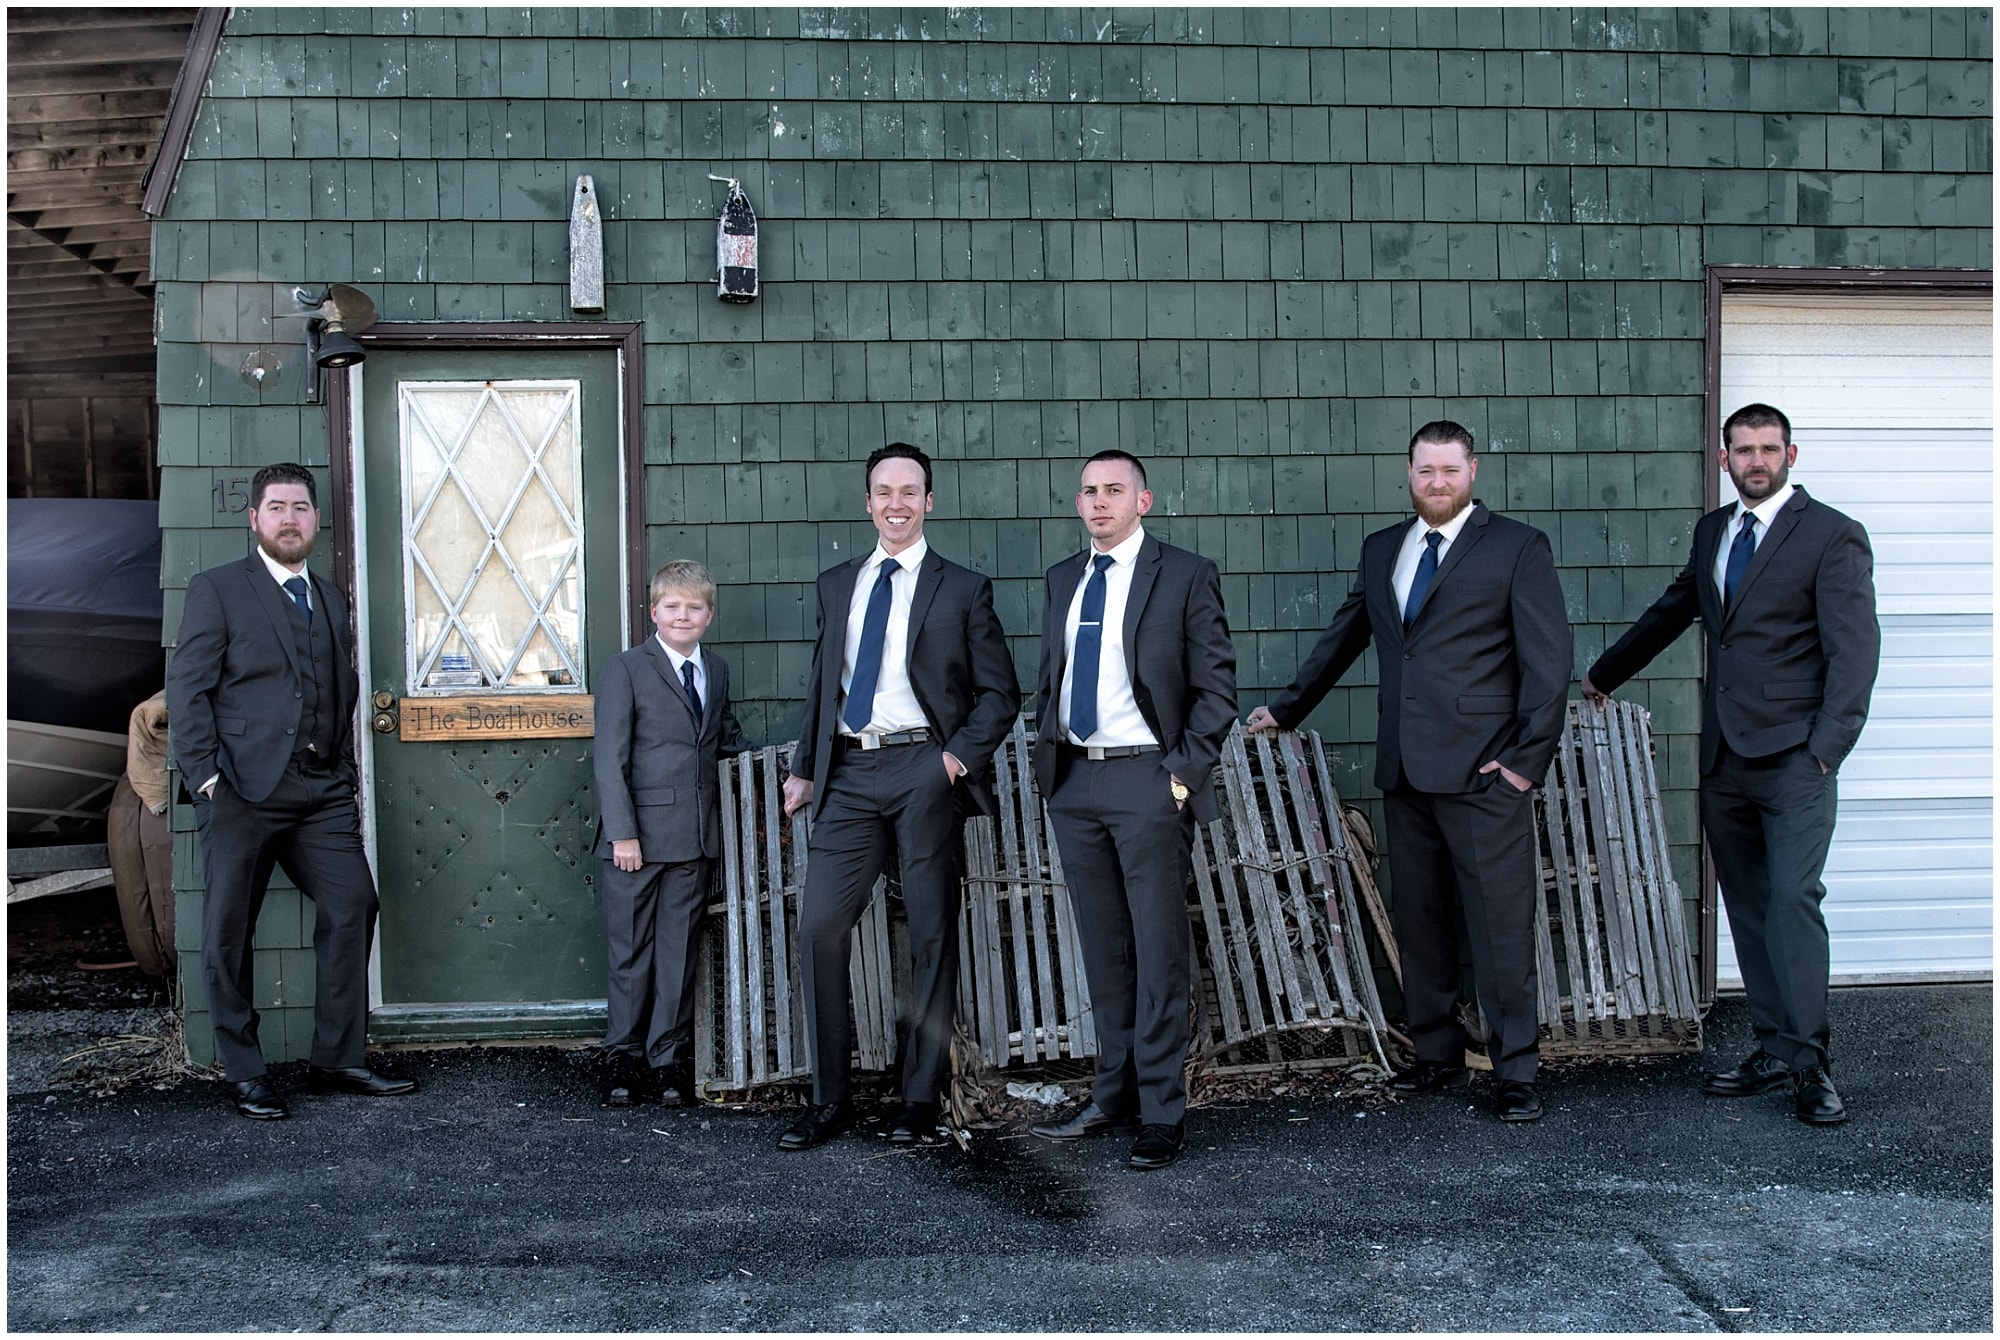 The groom with groomsmen posing for wedding photos among the fishermen shacks and lobster traps at Fisherman's Cove in Eastern Passage NS.